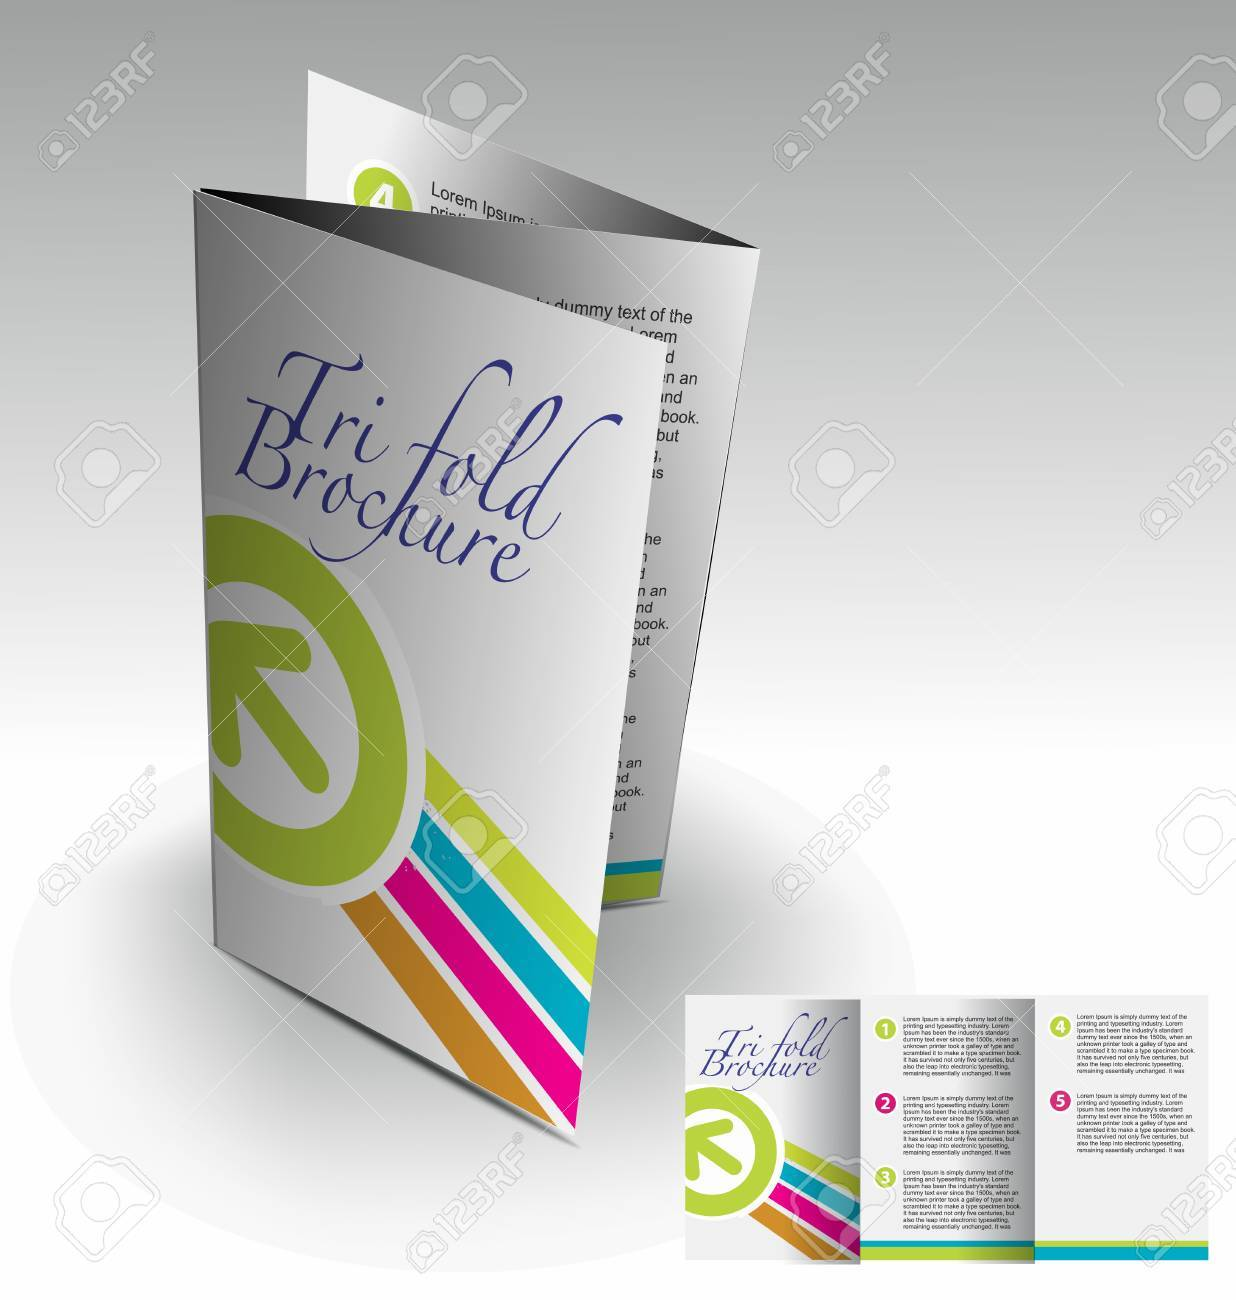 Tri-fold brochure design elemenr, vector illustartion. Stock Vector - 9027927